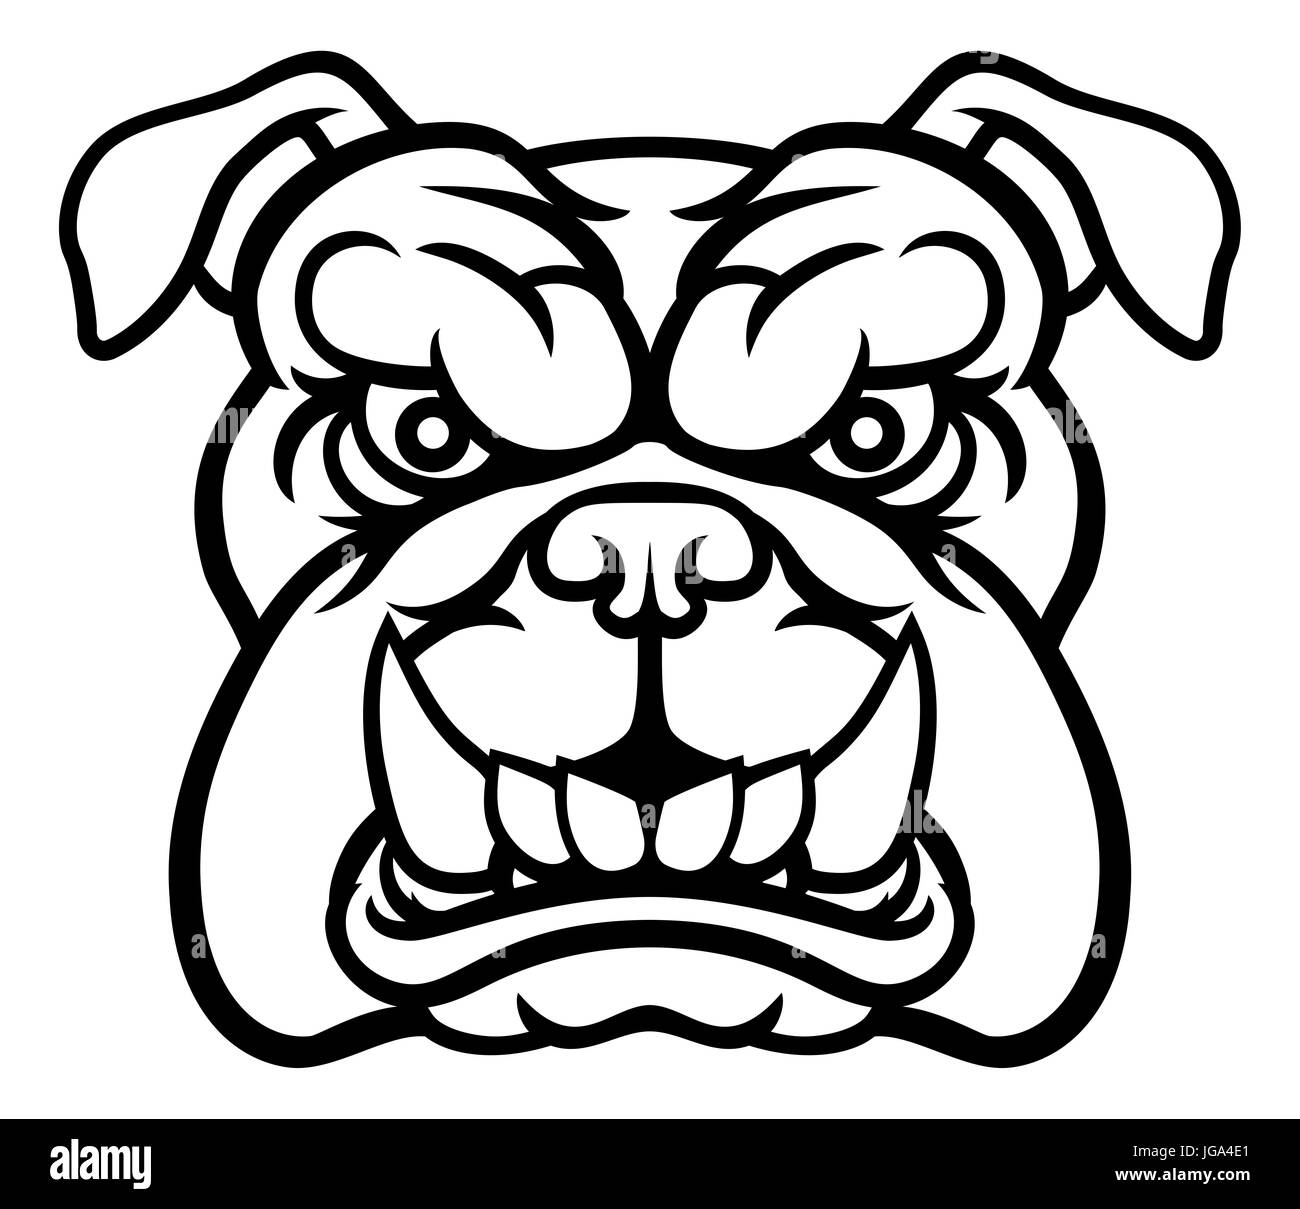 Scribble Drawing Meaning : Mean dogs drawings pixshark images galleries